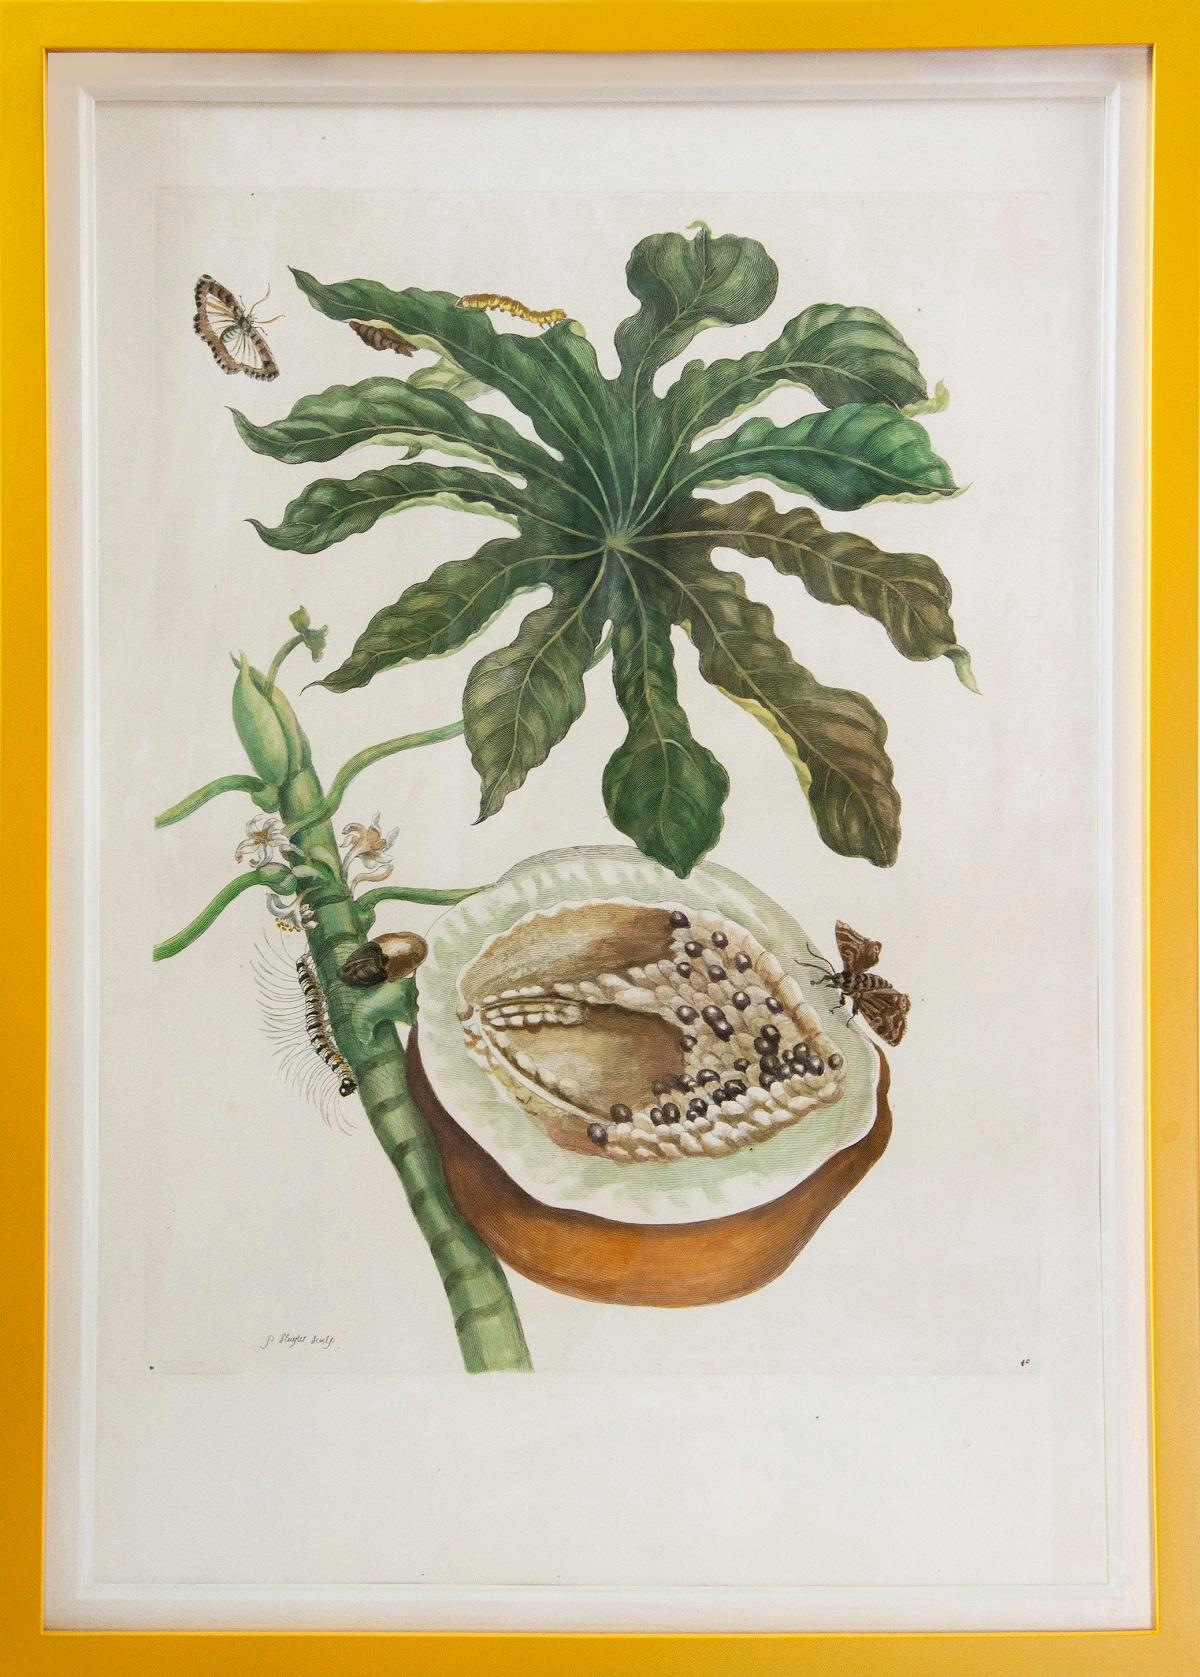 Merian - A Group of Six Flowers, Insects and Fruits.